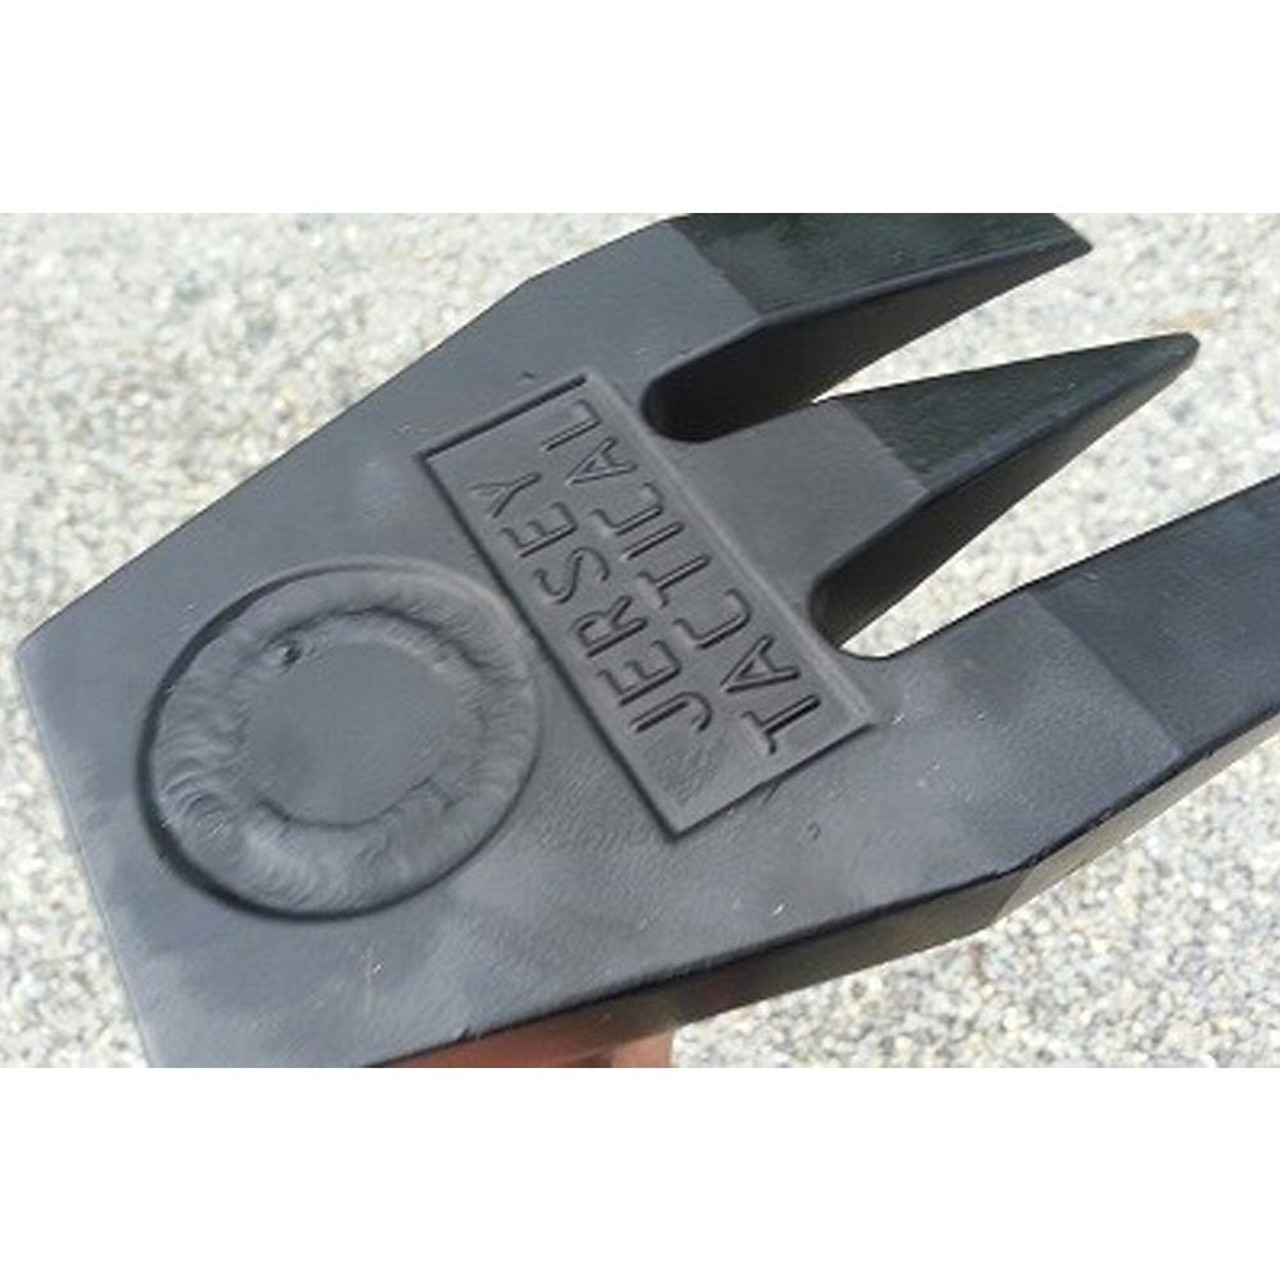 Jersey Tactical PRO-2015 JTC-PRO-CLAW 30 Inch Forcible Entry Claw, Door Breaching Tool, with a custom heat treated alloy handle